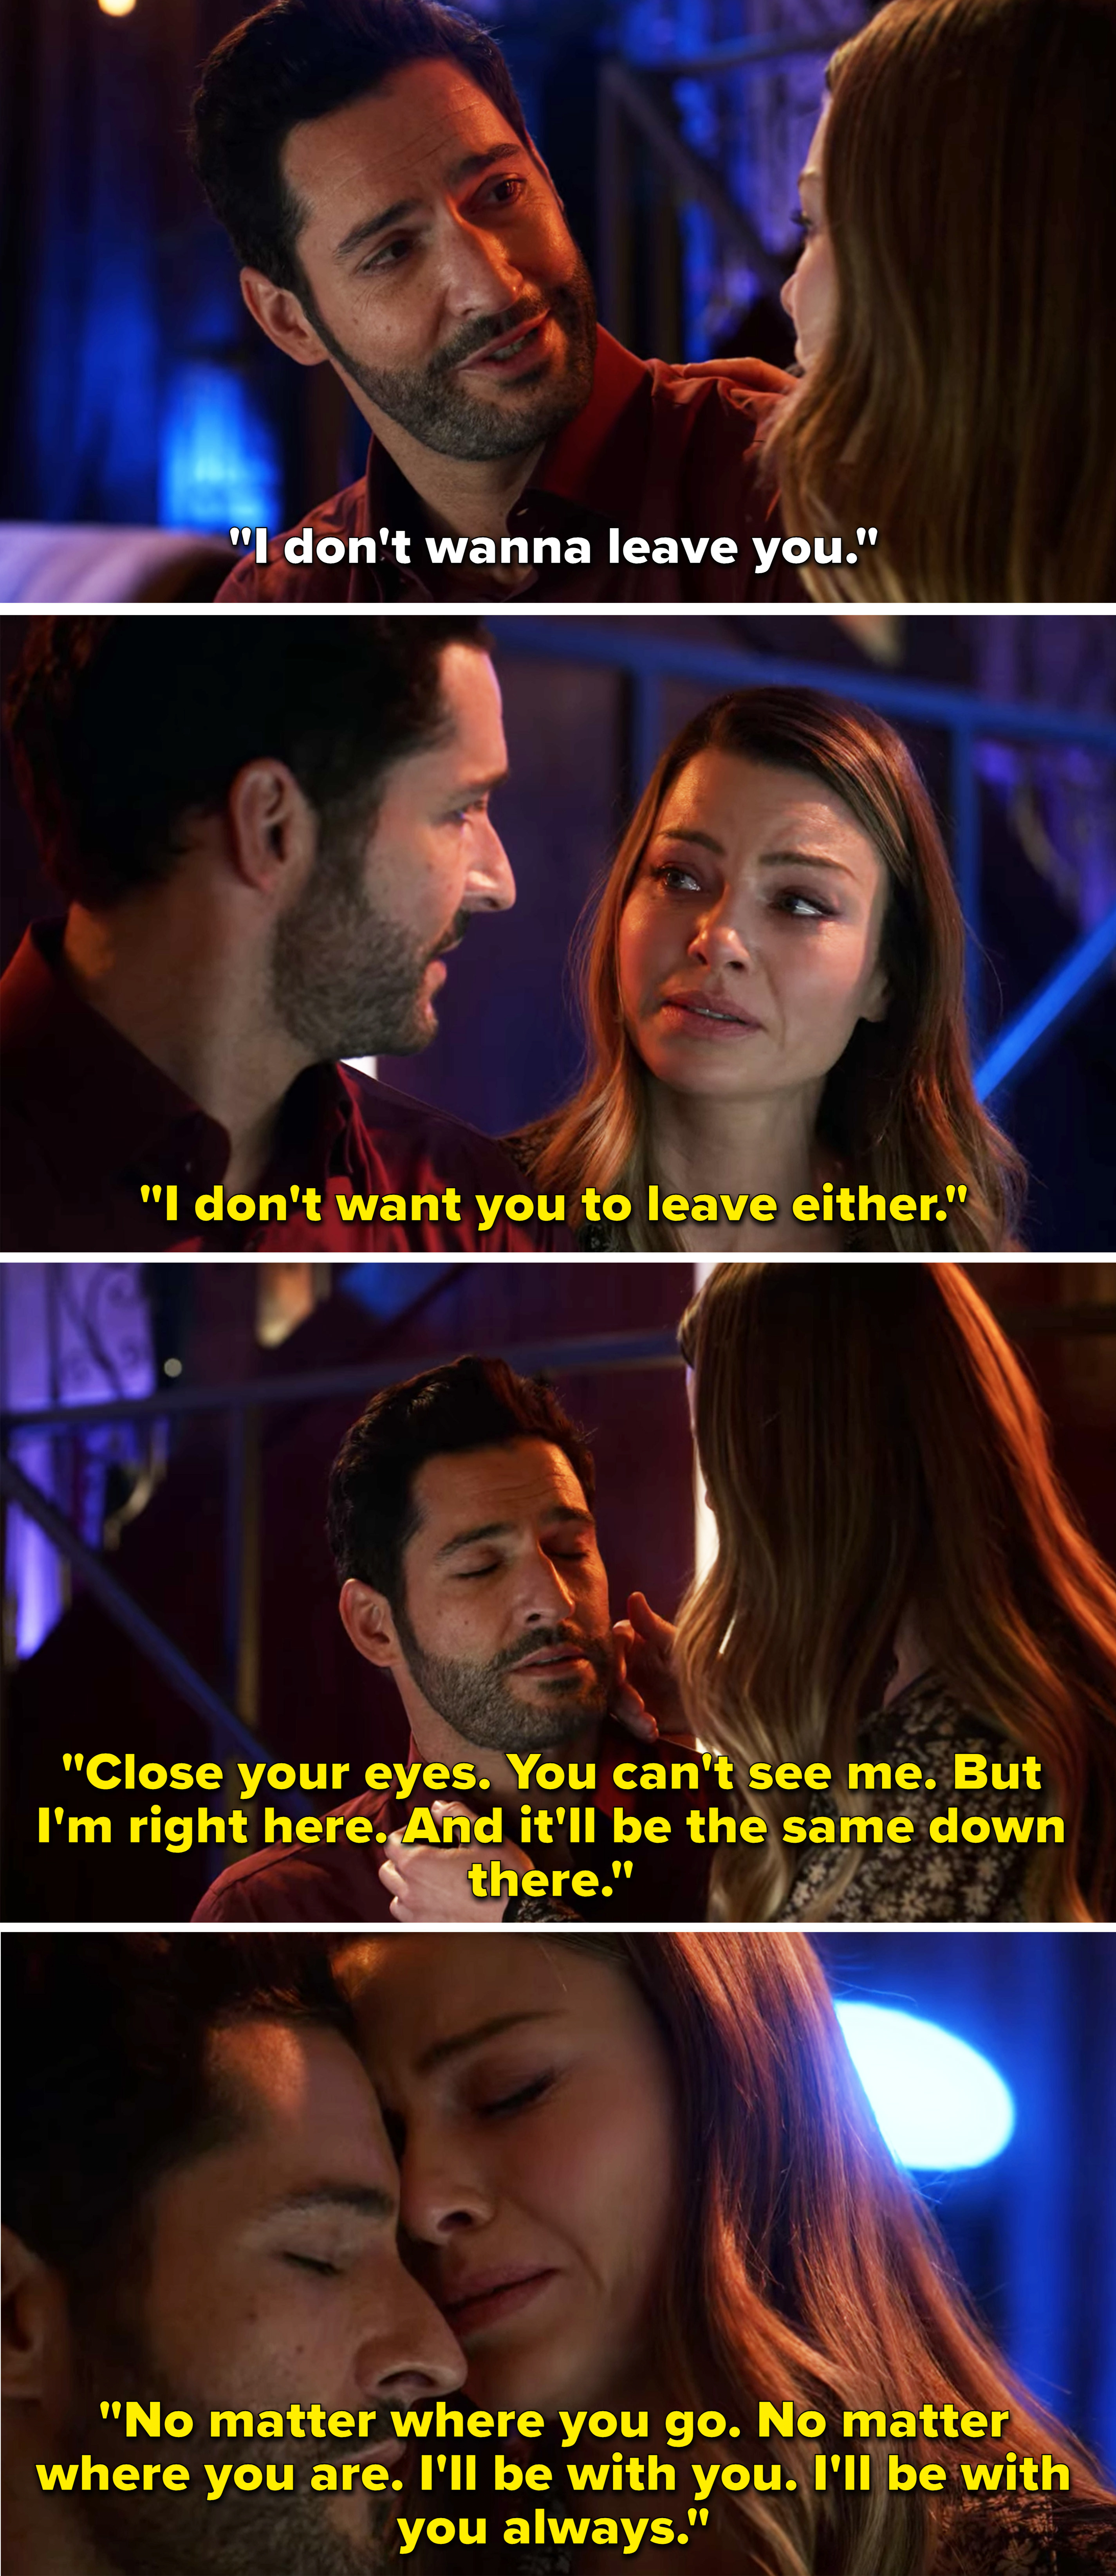 Chloe and Lucifer sobbing and Chloe saying she'll be with him always